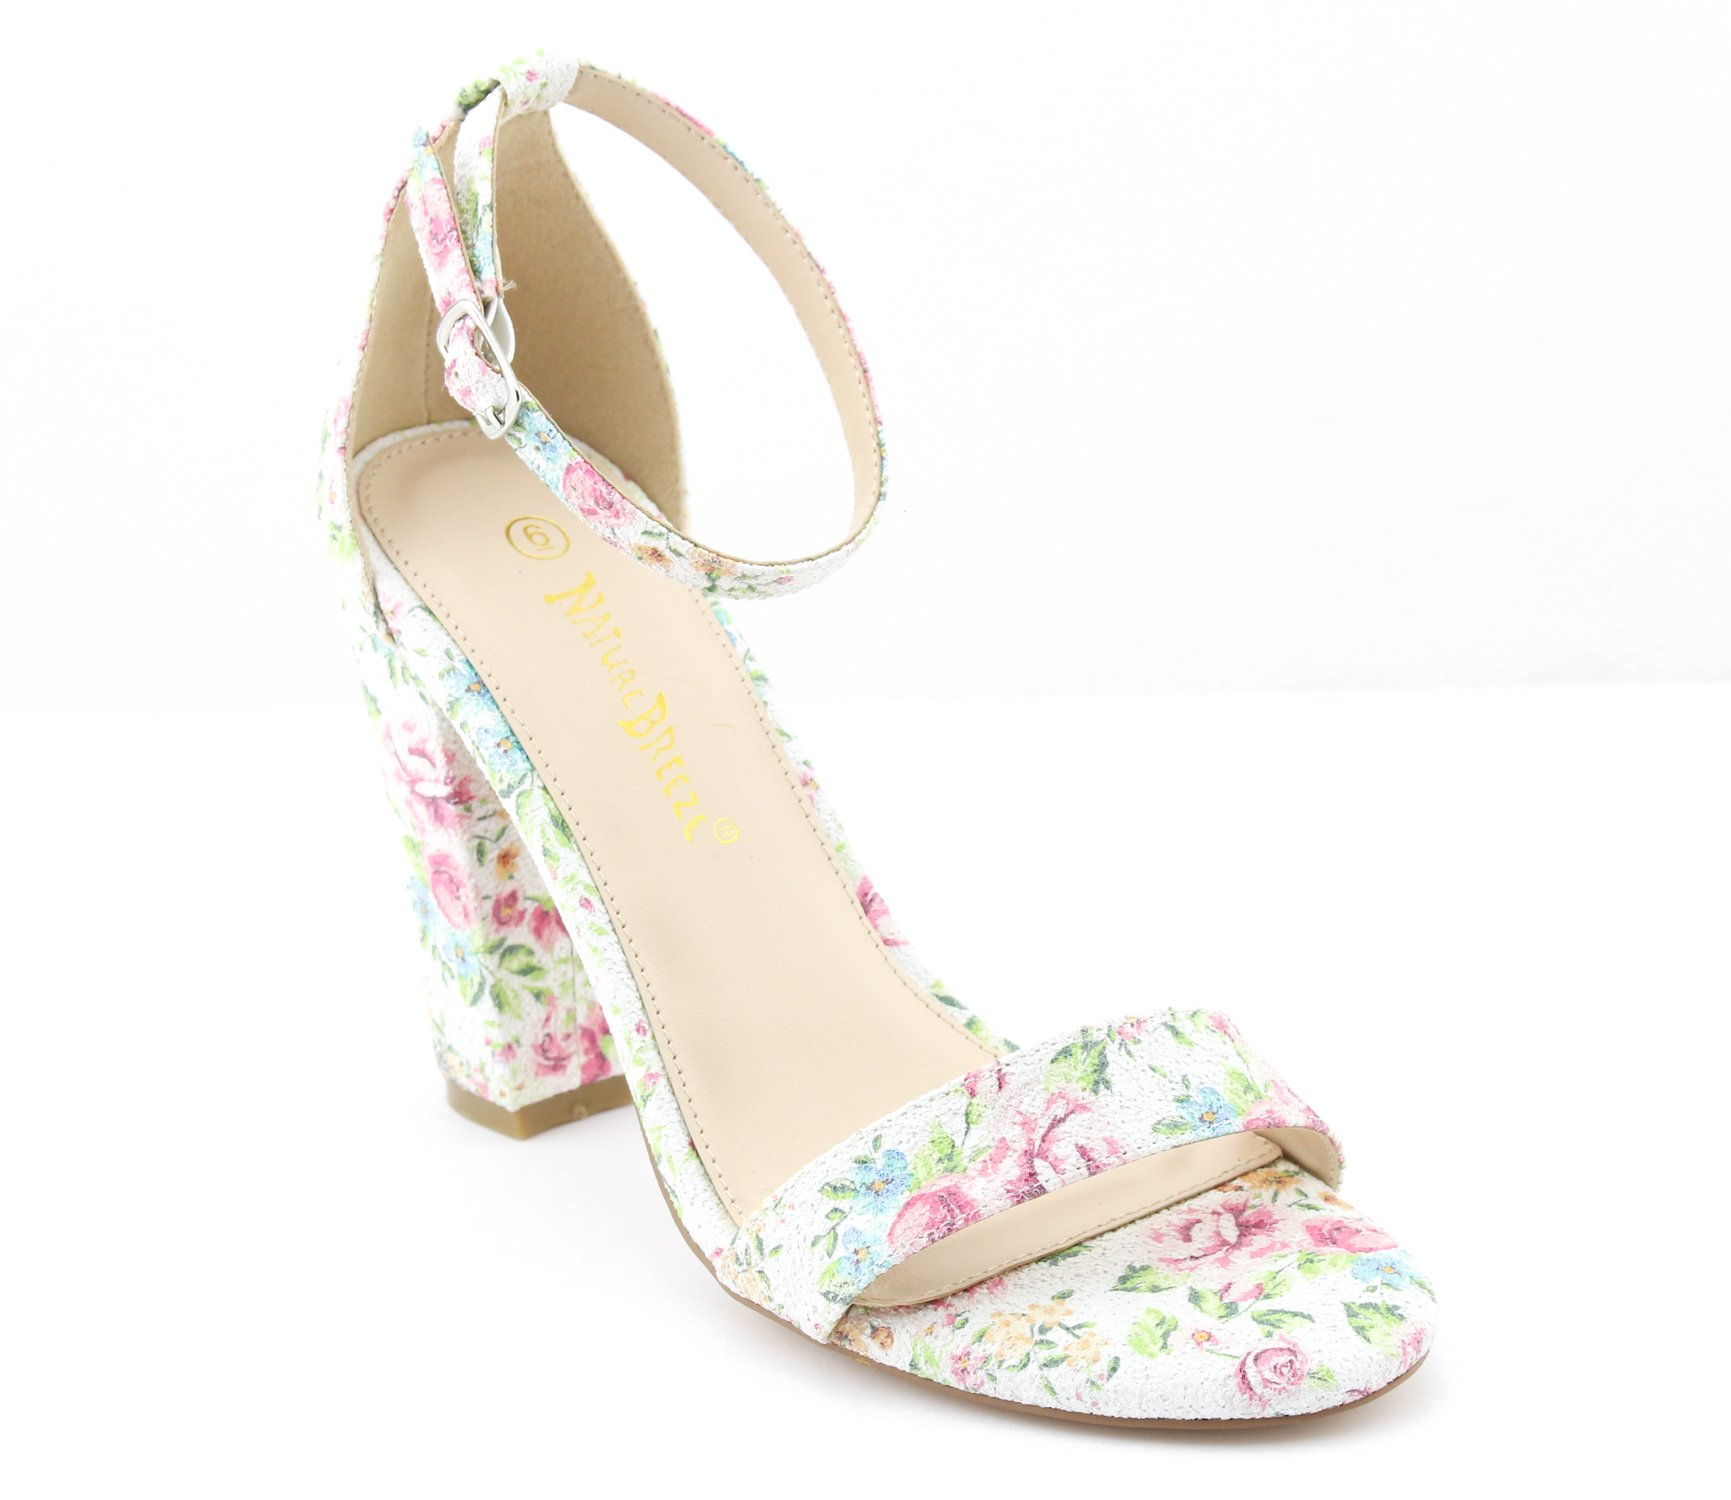 CALICO KIKI PHOEBE-CK01 Women's Casual Floral Glitter Ankle Strap Block Heel Open Toe Pumps (8.5 US,Off White)